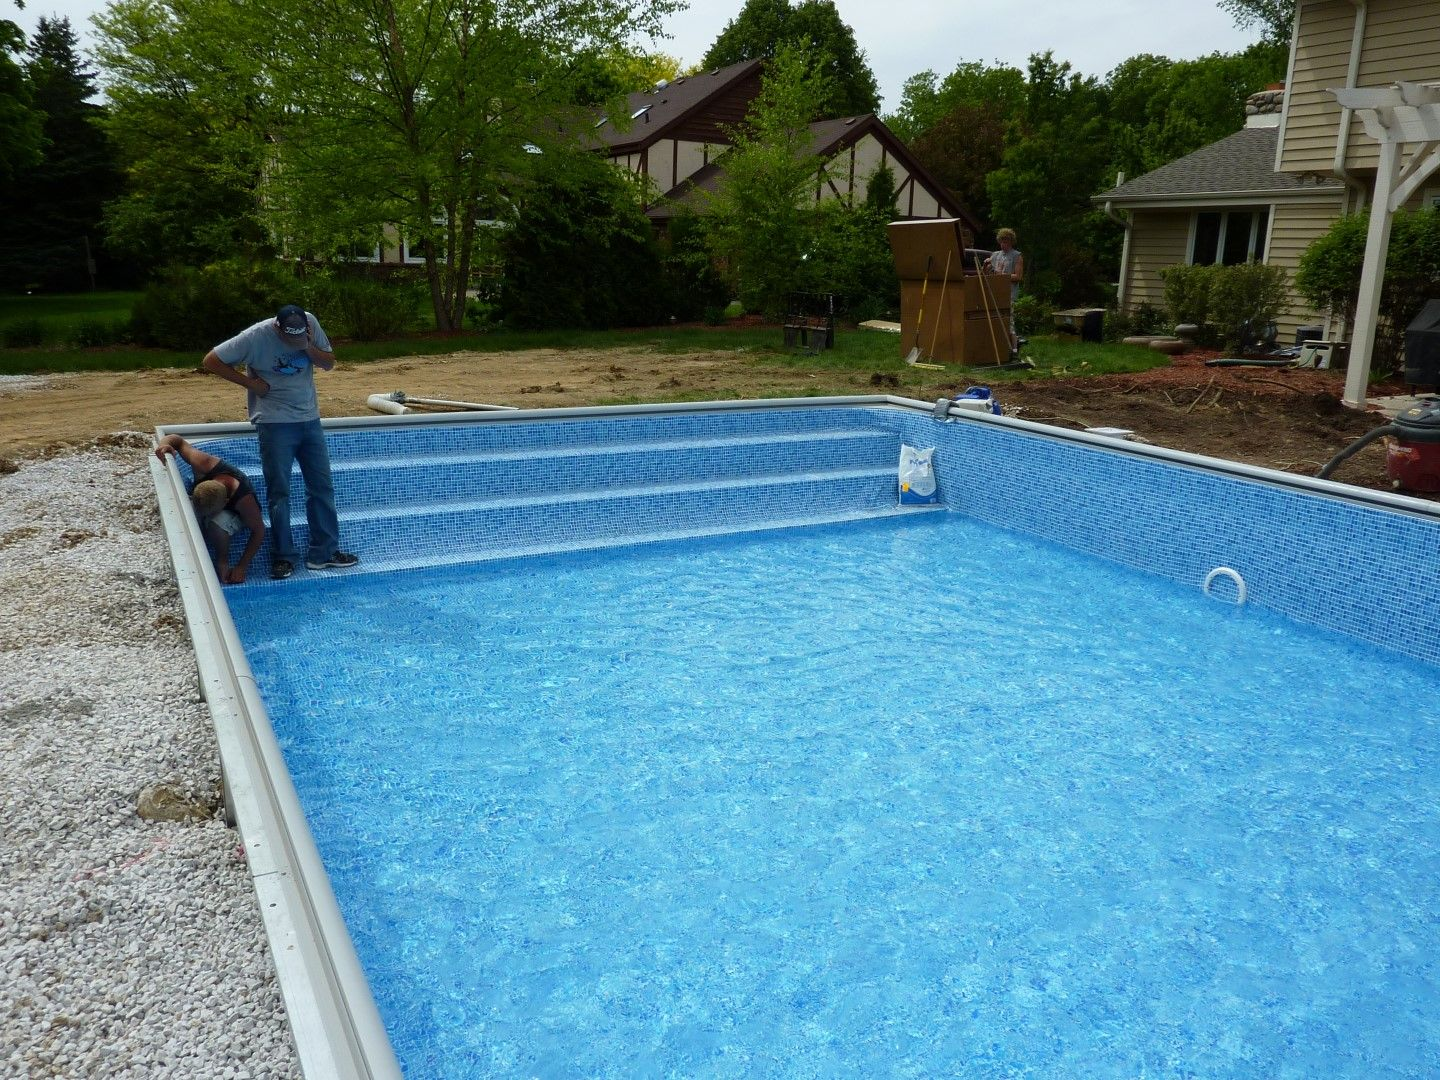 Fiberglass swimming pool kits fiberglass pool steps dark fiberglass pool kits diy fiberglass pool kits fiberglass inground pool kits do it yourself used fiberglass pools for sale inground pool kit fiberglass solutioingenieria